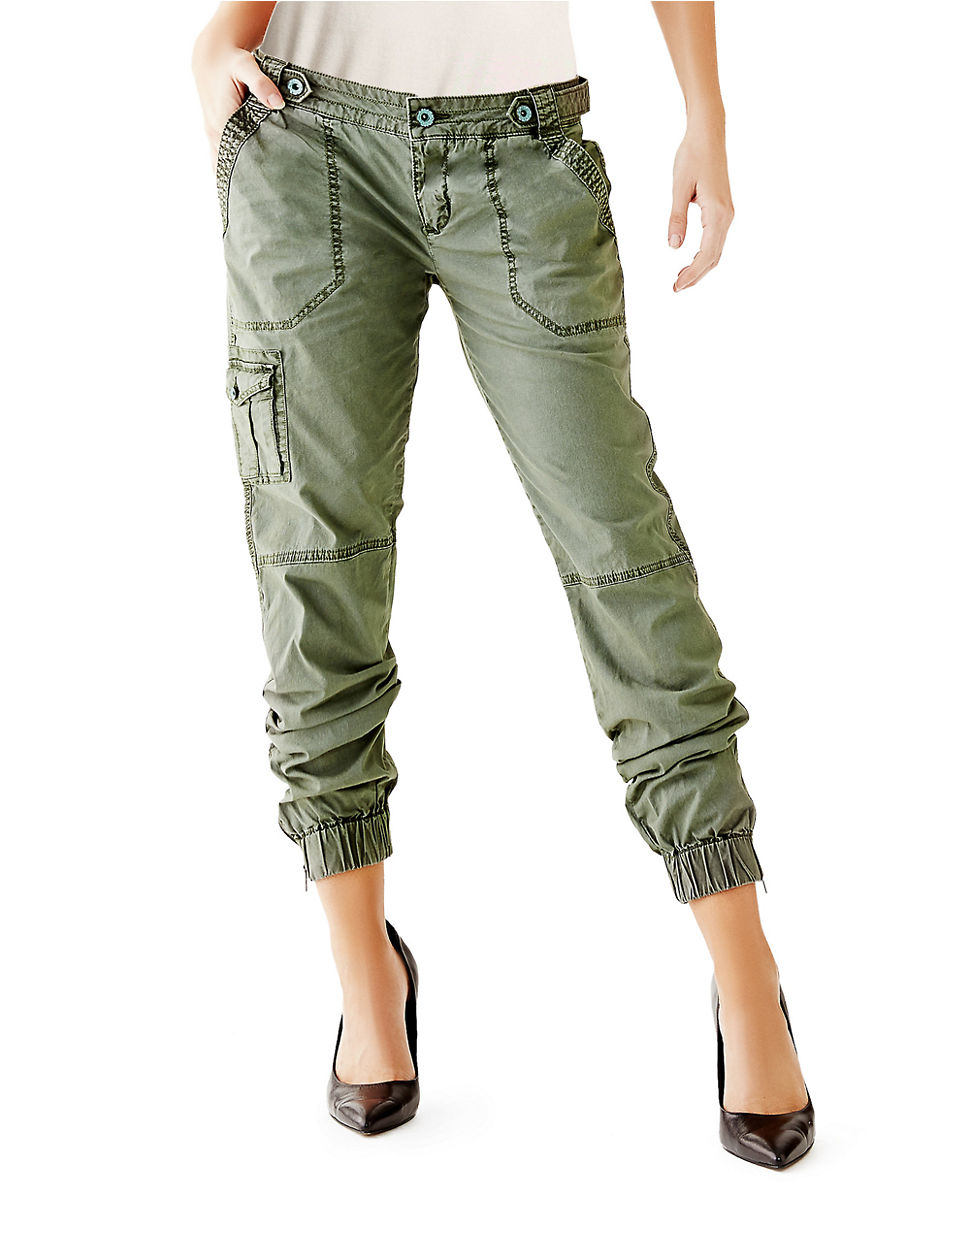 Cargo pants for girls fashion 43